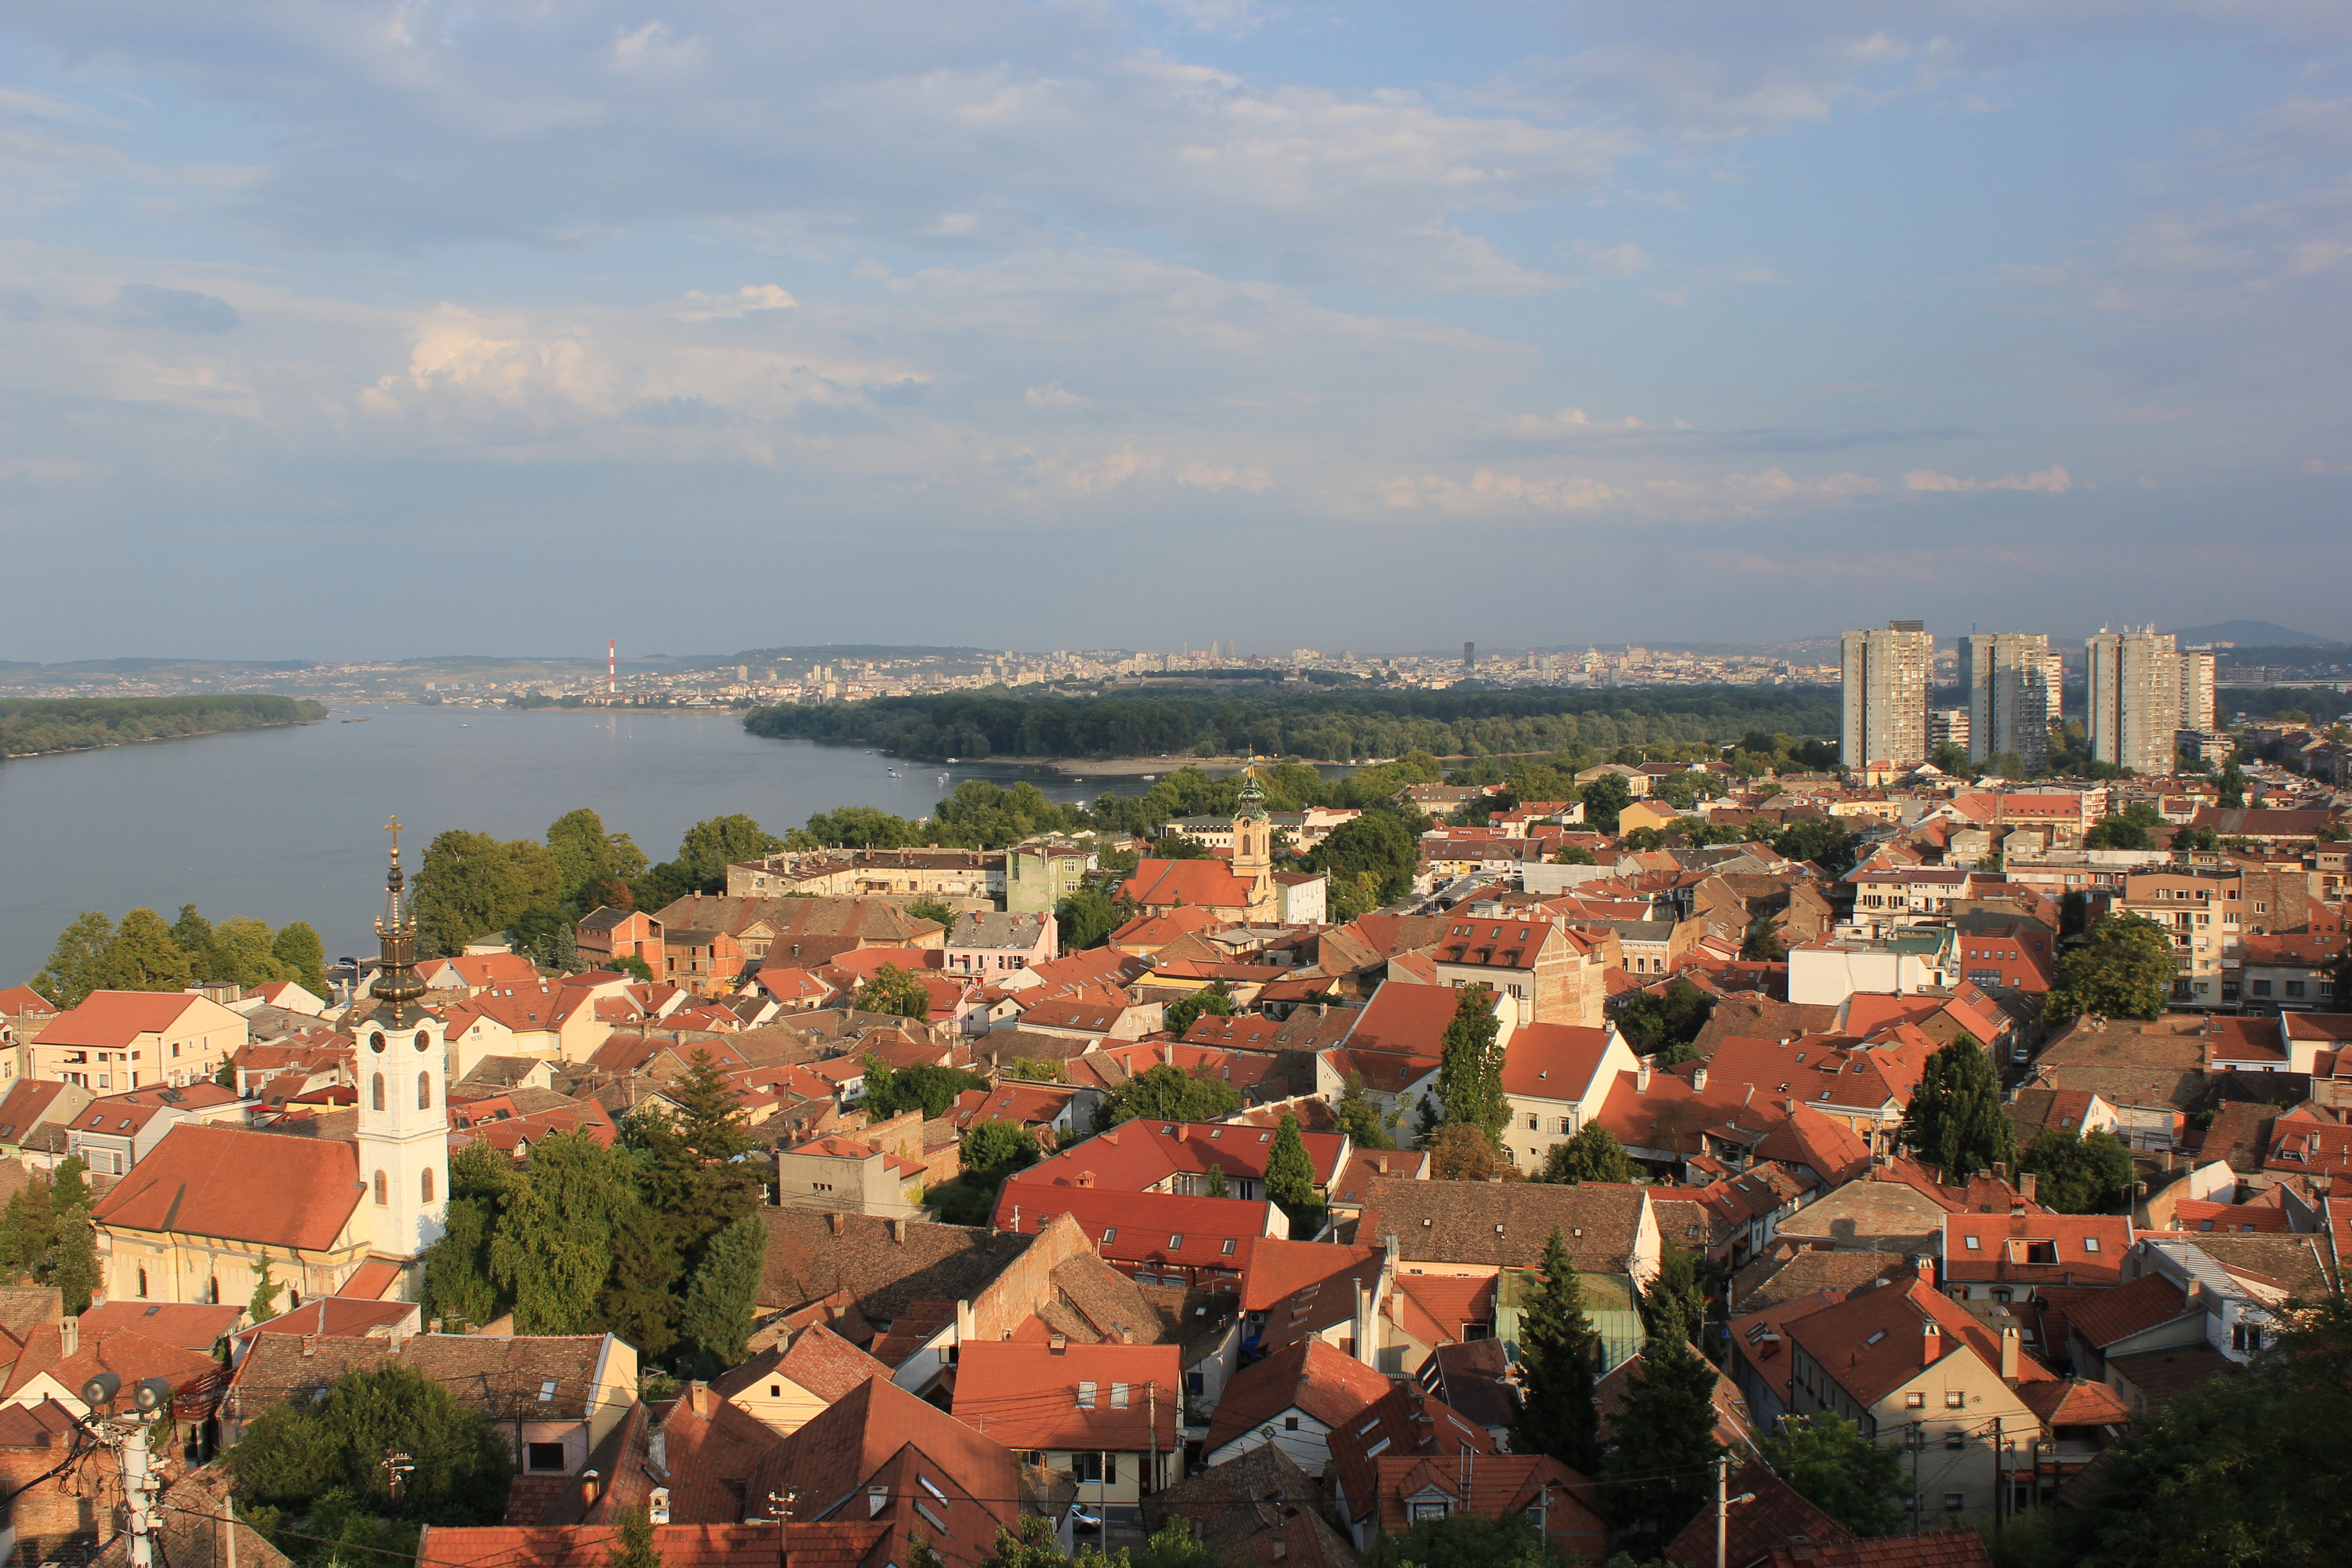 https://upload.wikimedia.org/wikipedia/commons/e/eb/Zemun_View_3.JPG